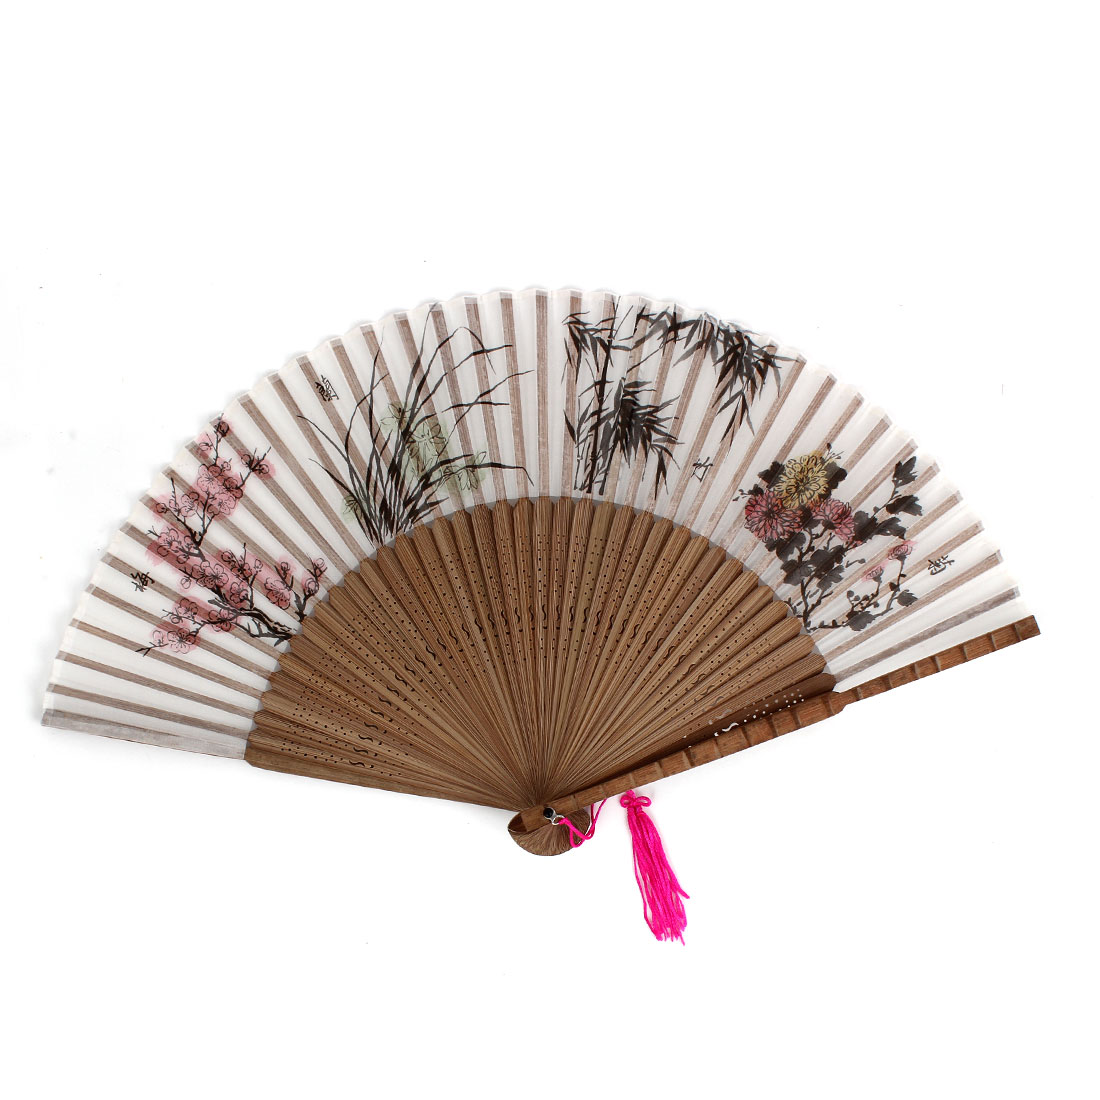 Flowers Bamboo Pattern Tassels Decor Hollow out Frame Folding Hand Fan Gray